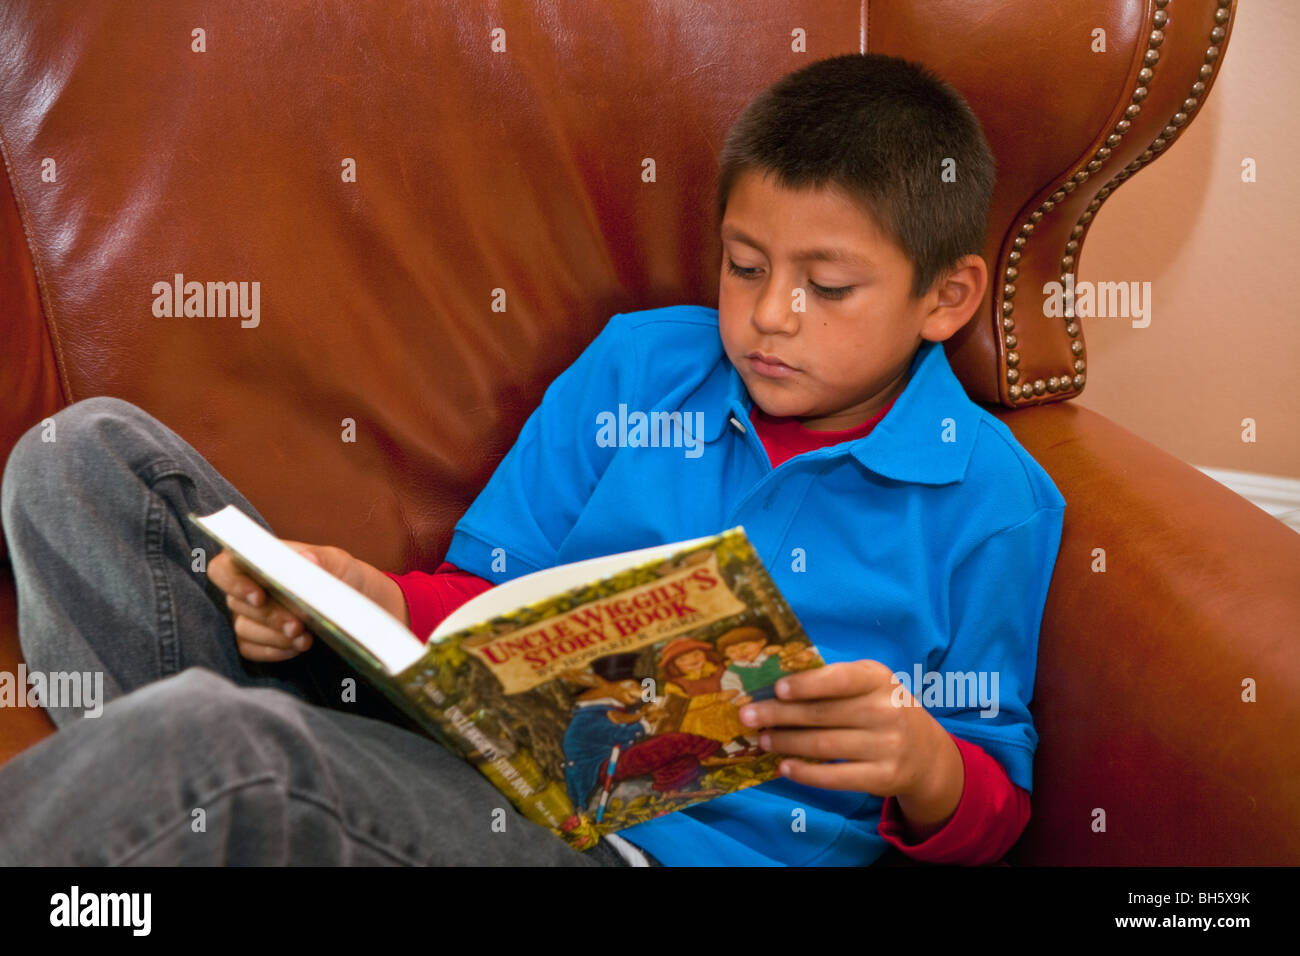 multi racial diversity racially diverse multicultural 8-9 year old reading books vintage illustration illustrations - Stock Image